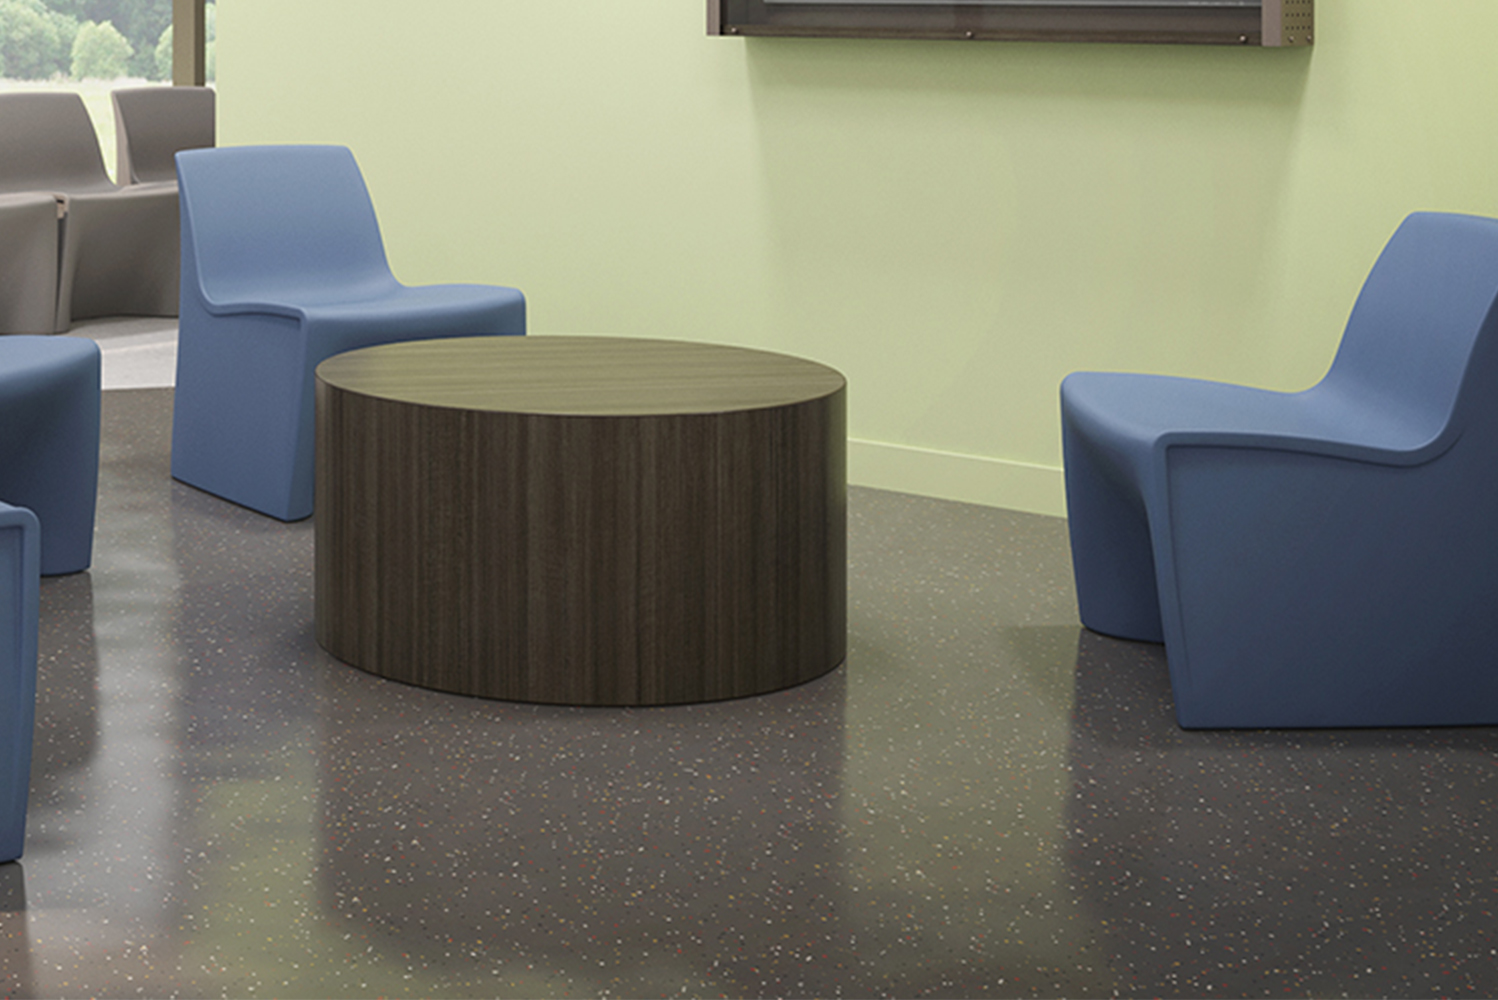 Spec Furniture launched the Hardi seating series available in lounge and dining designs.